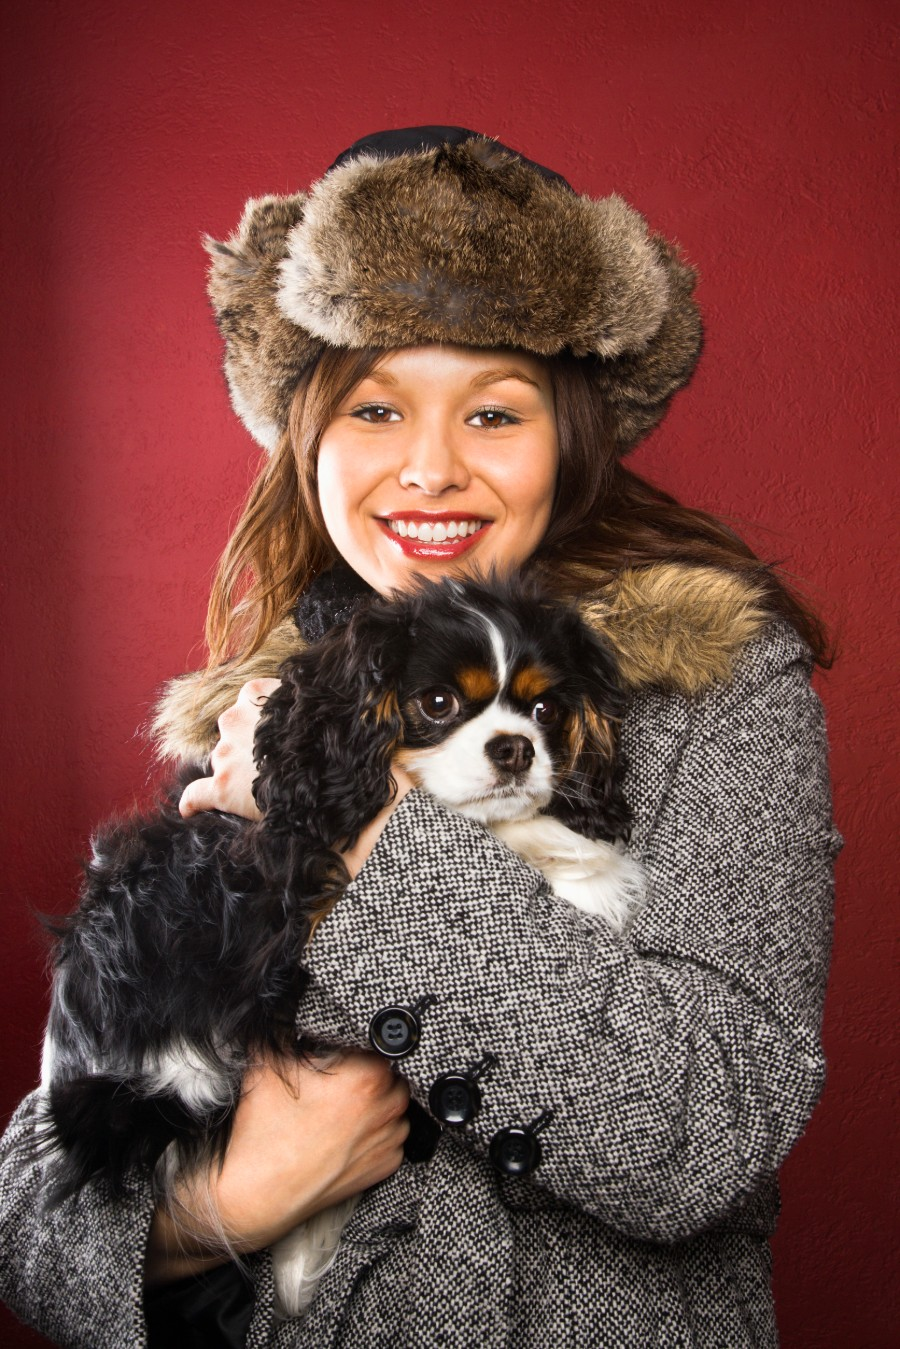 Cavalier King Charles Spaniel and college student